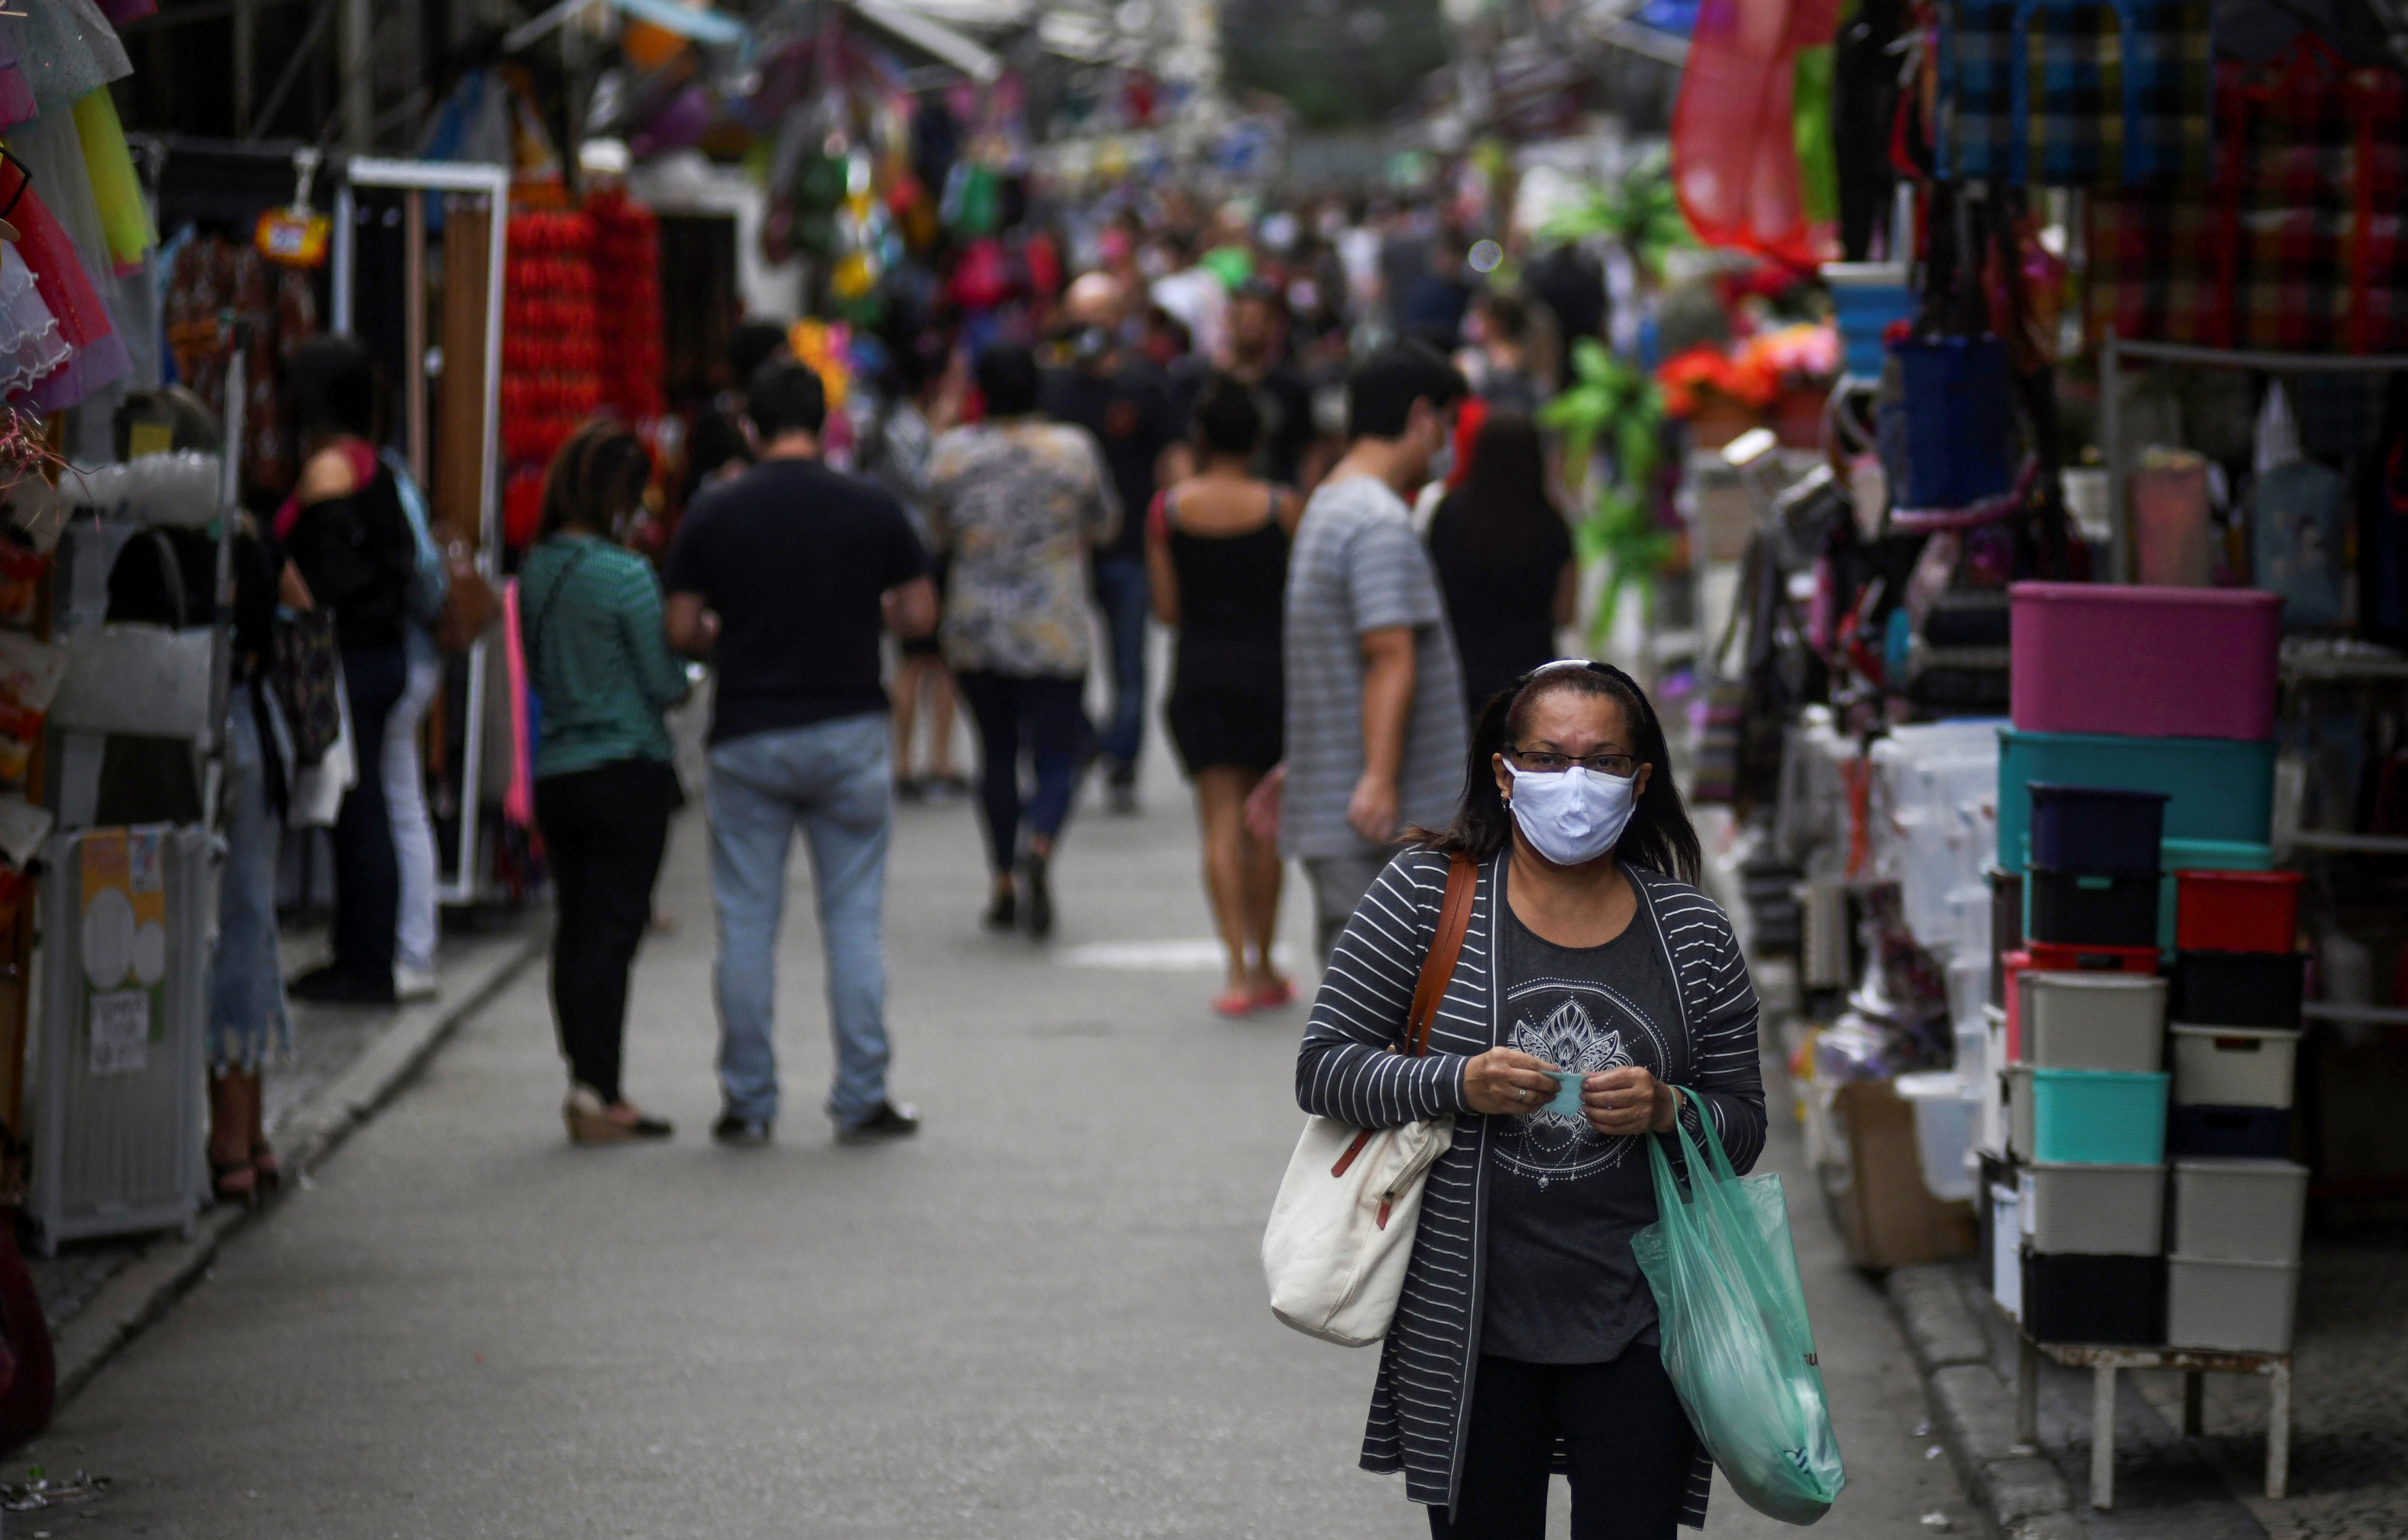 People walk at a popular shopping street, as the city eases restrictions and allows commerce to open, amid the coronavirus disease (COVID-19) outbreak in Rio de Janeiro, Brazil June 29, 2020.  Photo: Reuters